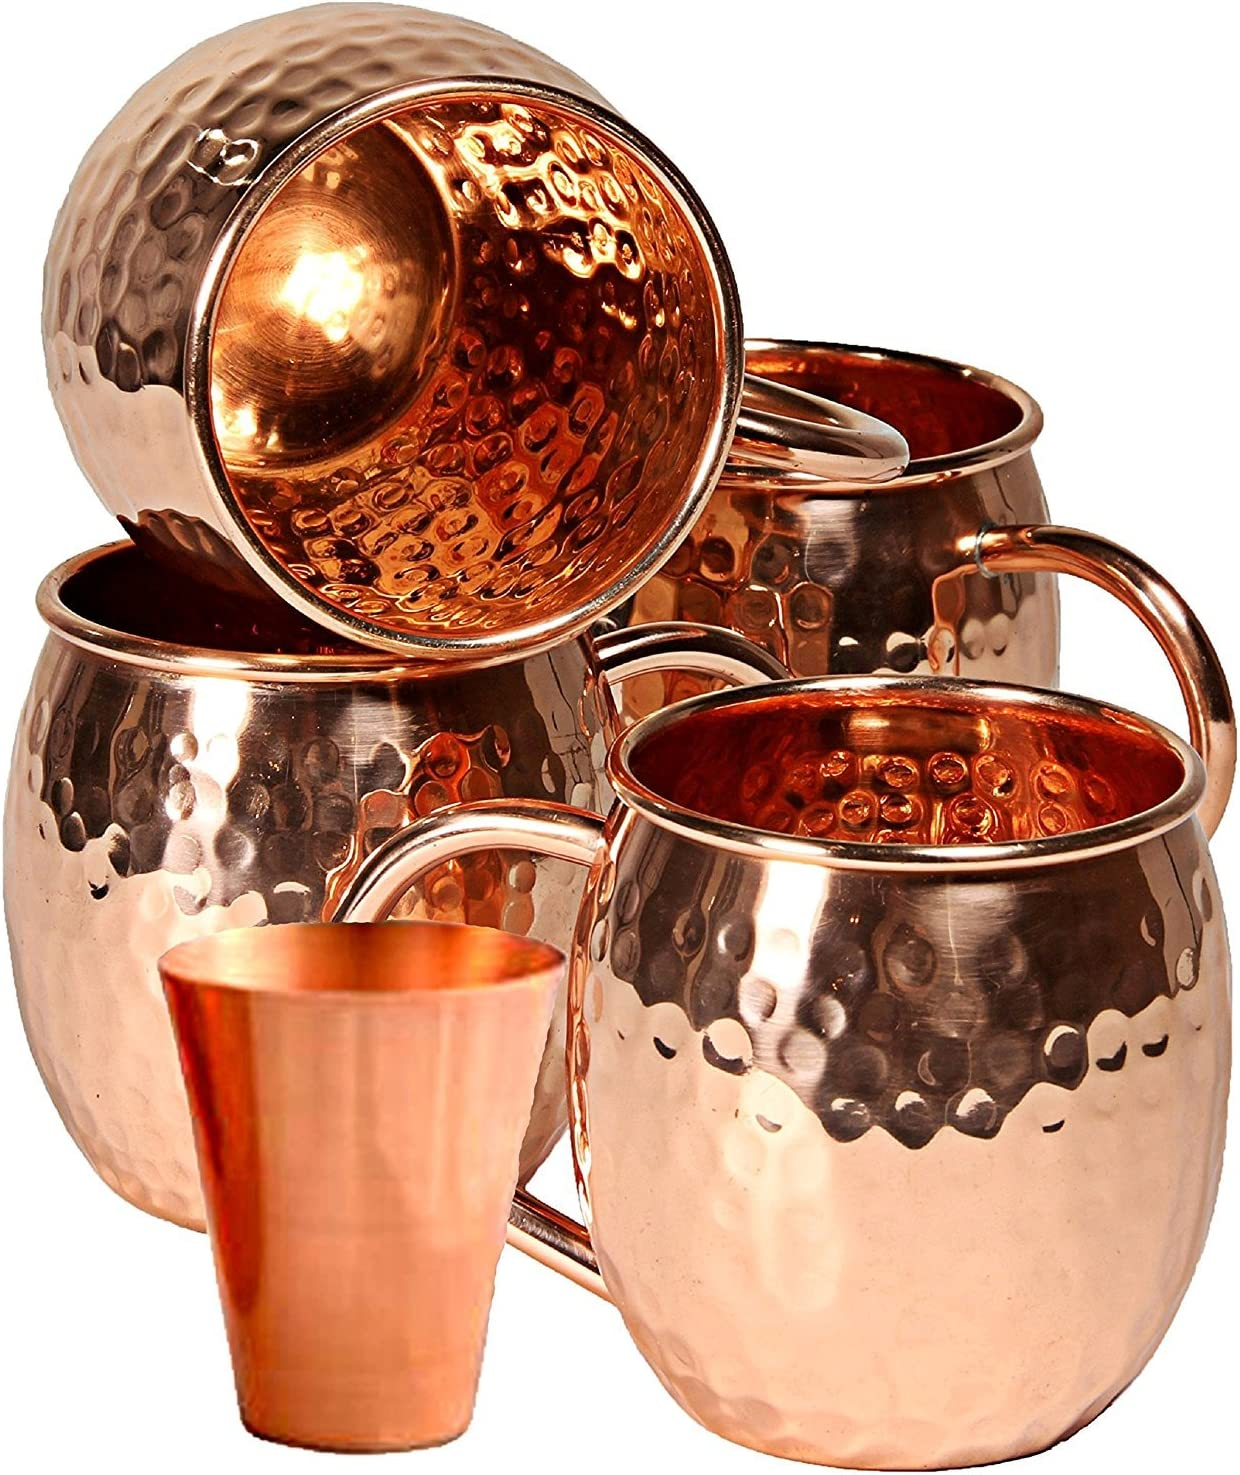 Amazon Com Solid Copper Moscow Mule Copper Mugs Handcrafted 100 Pure Hammered Copper 16 Oz Authentic Cups With Copper Handle Set Of 4 Bonus Free Set Of 4 Coasters Free Recipe E Book